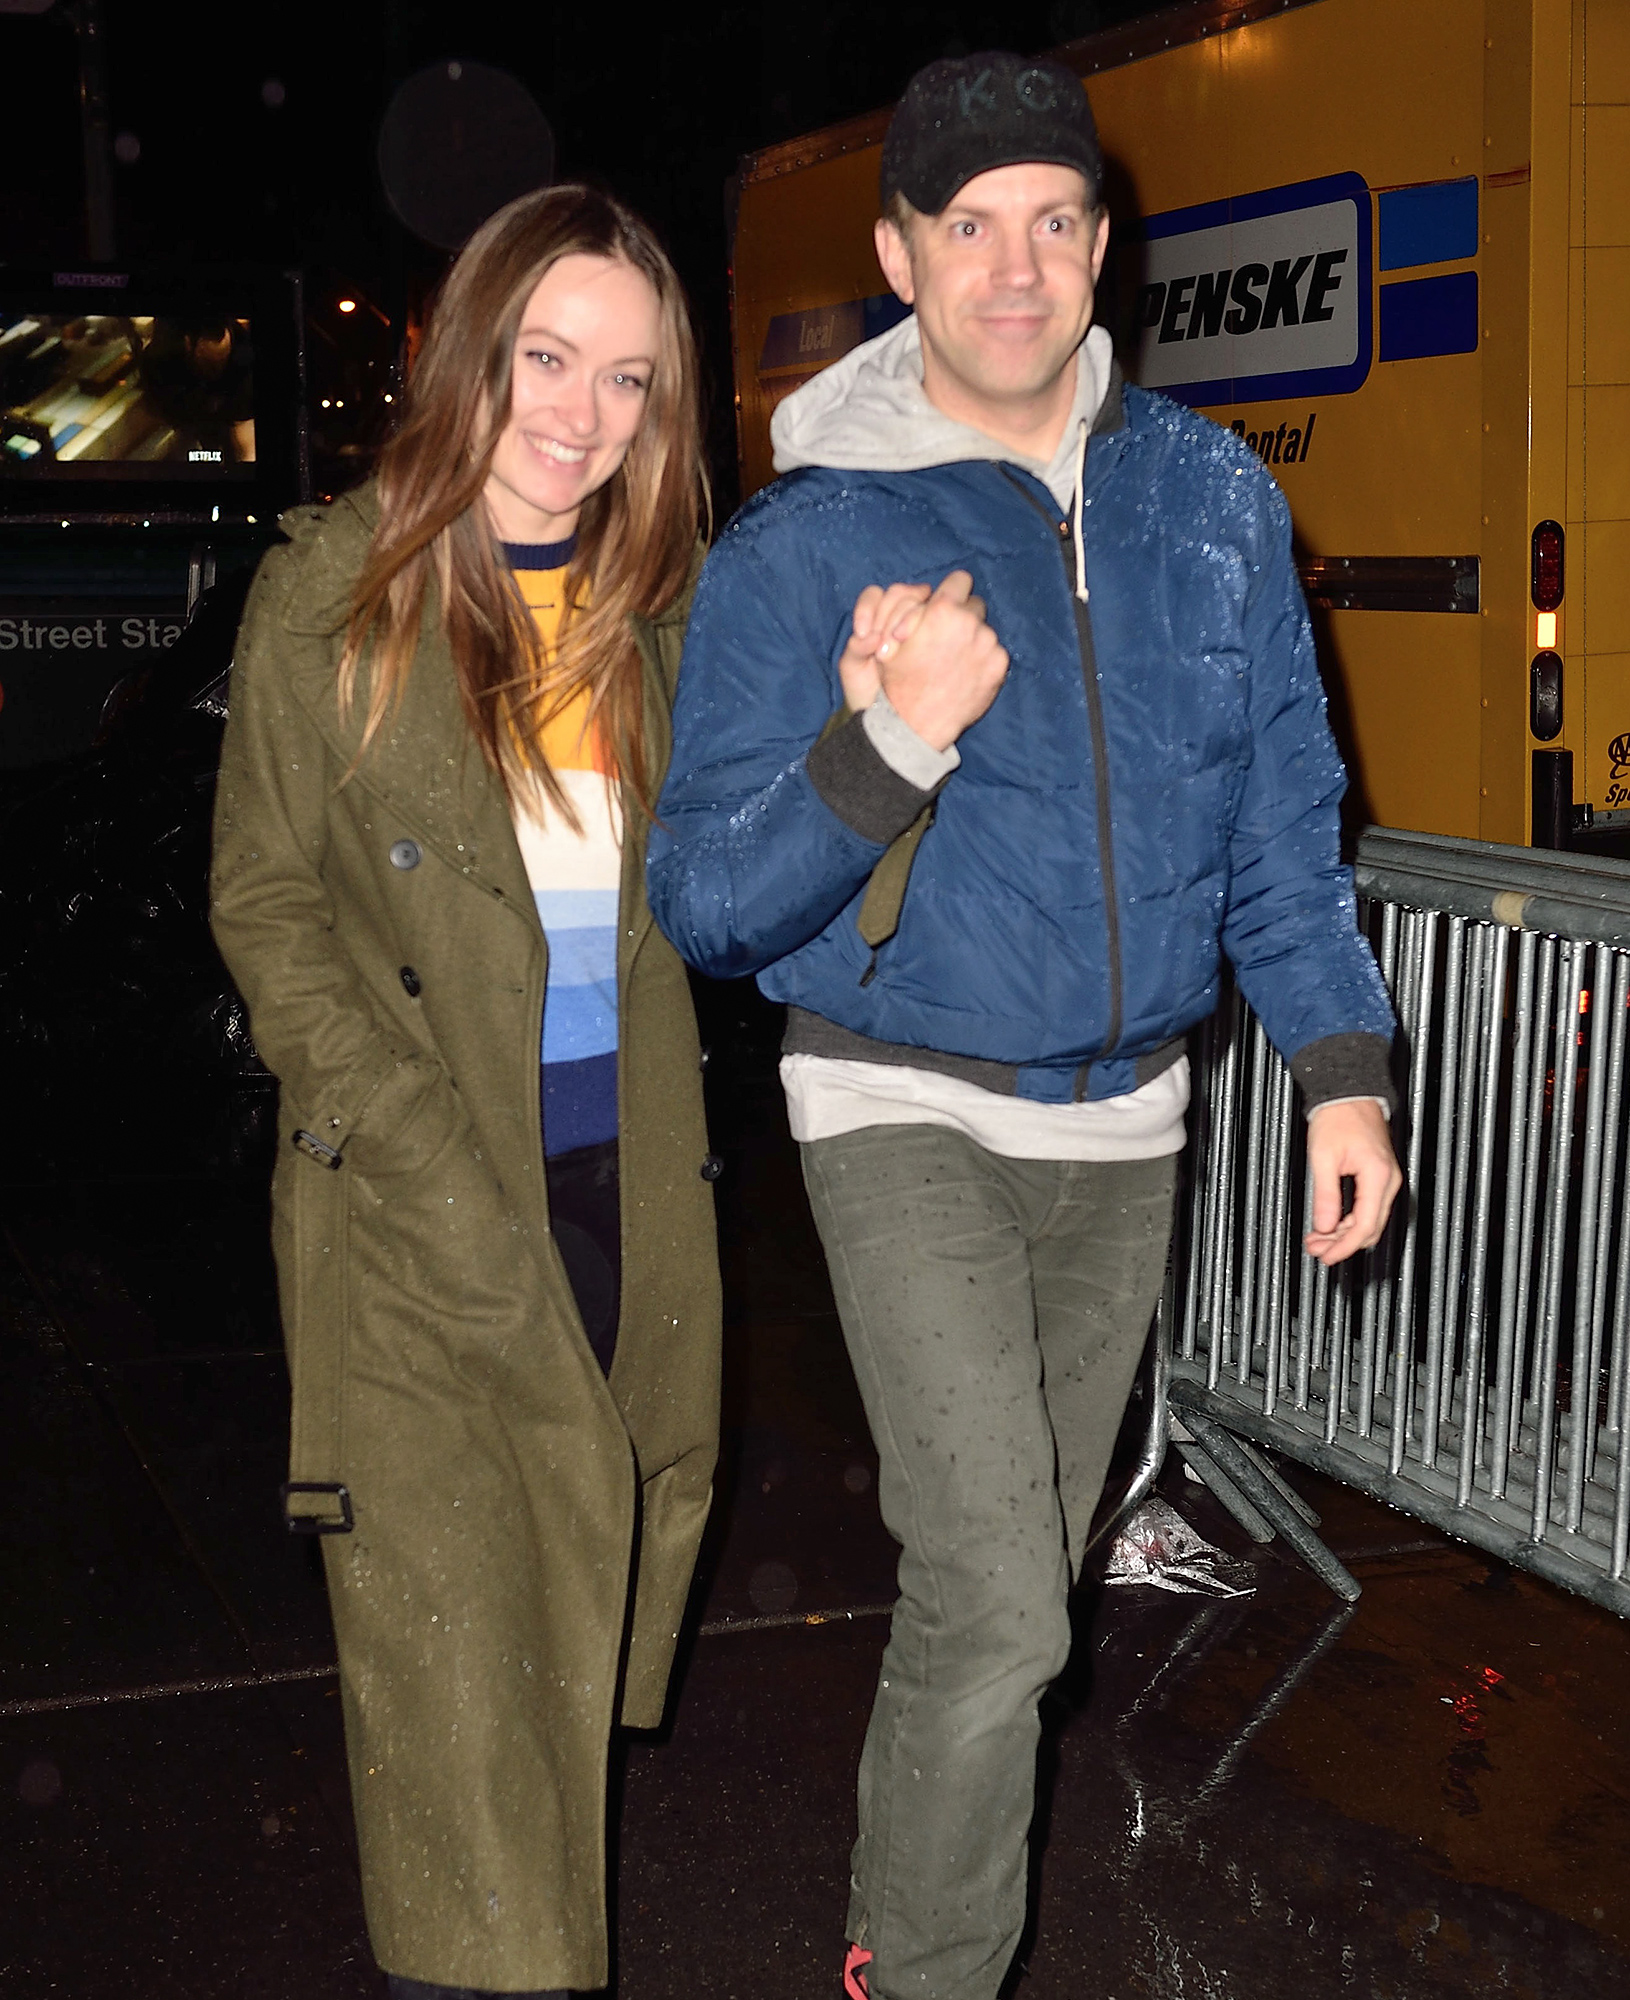 EXCLUSIVE: Olivia Wilde and Jason Sudeikis arrive hand in hand in the rain at the Saturday Night Live party in NYC.